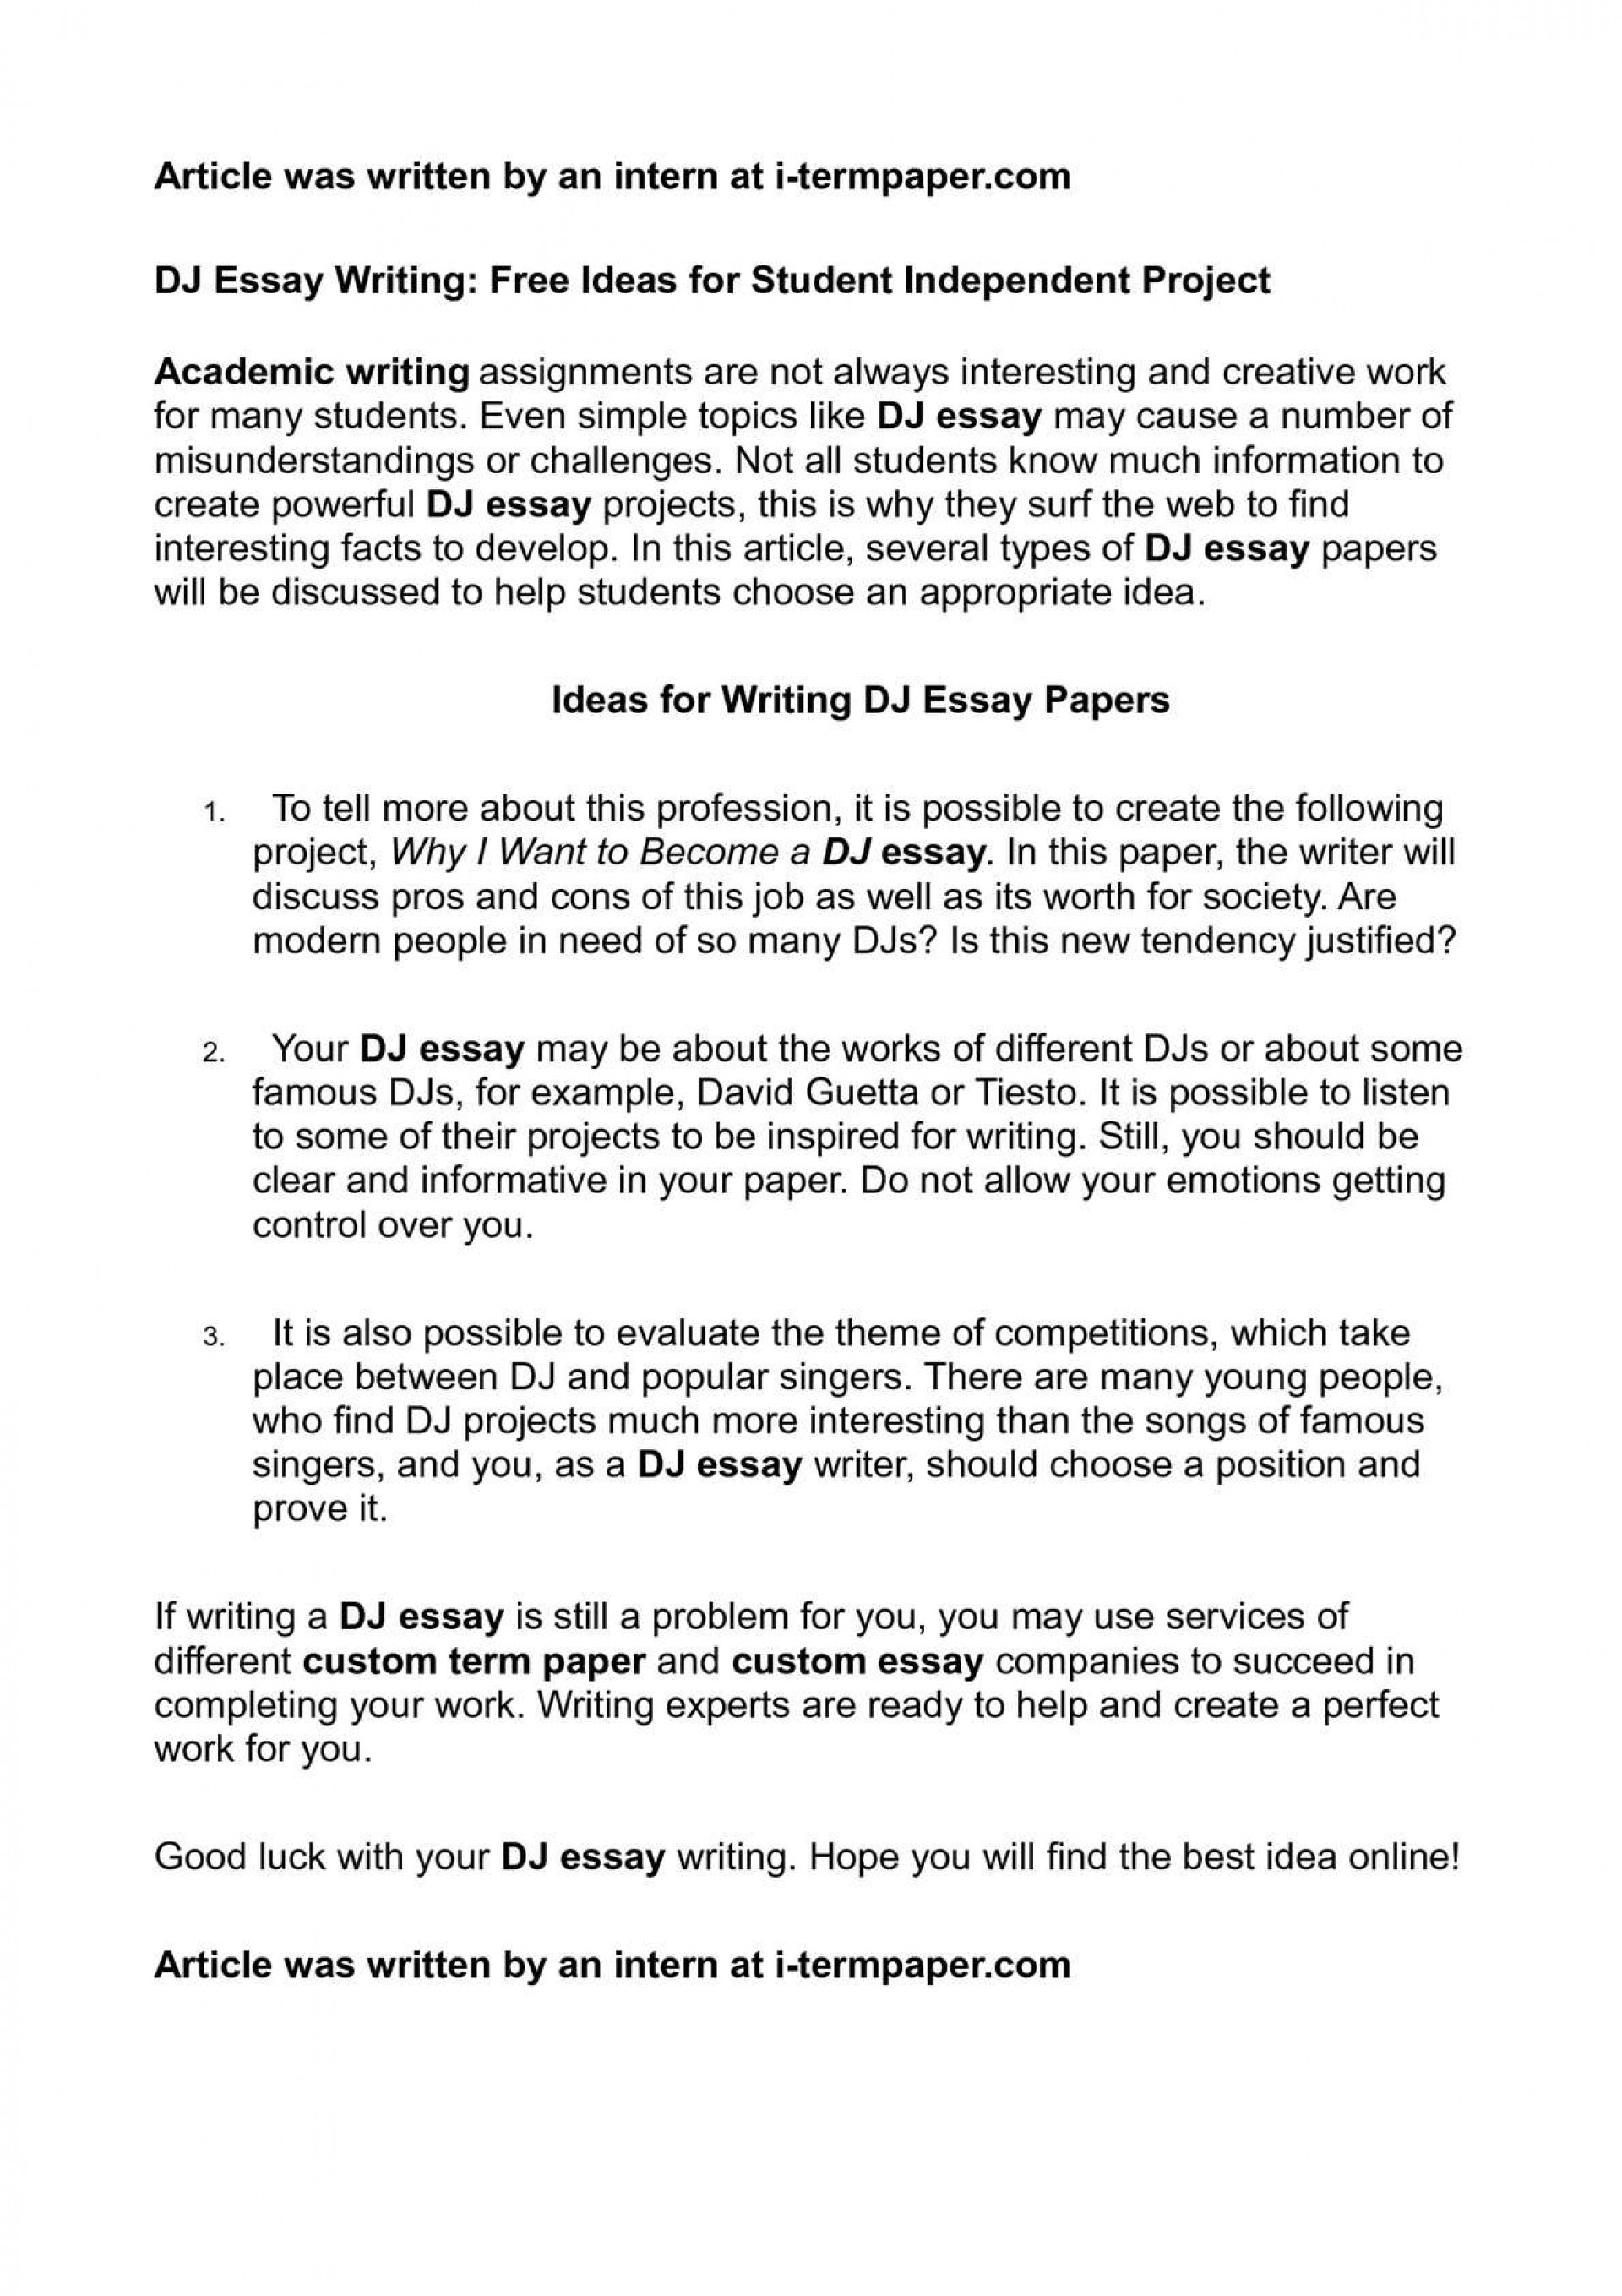 003 Essay Writer Free P1 Amazing Trial Unblocked Software 1920